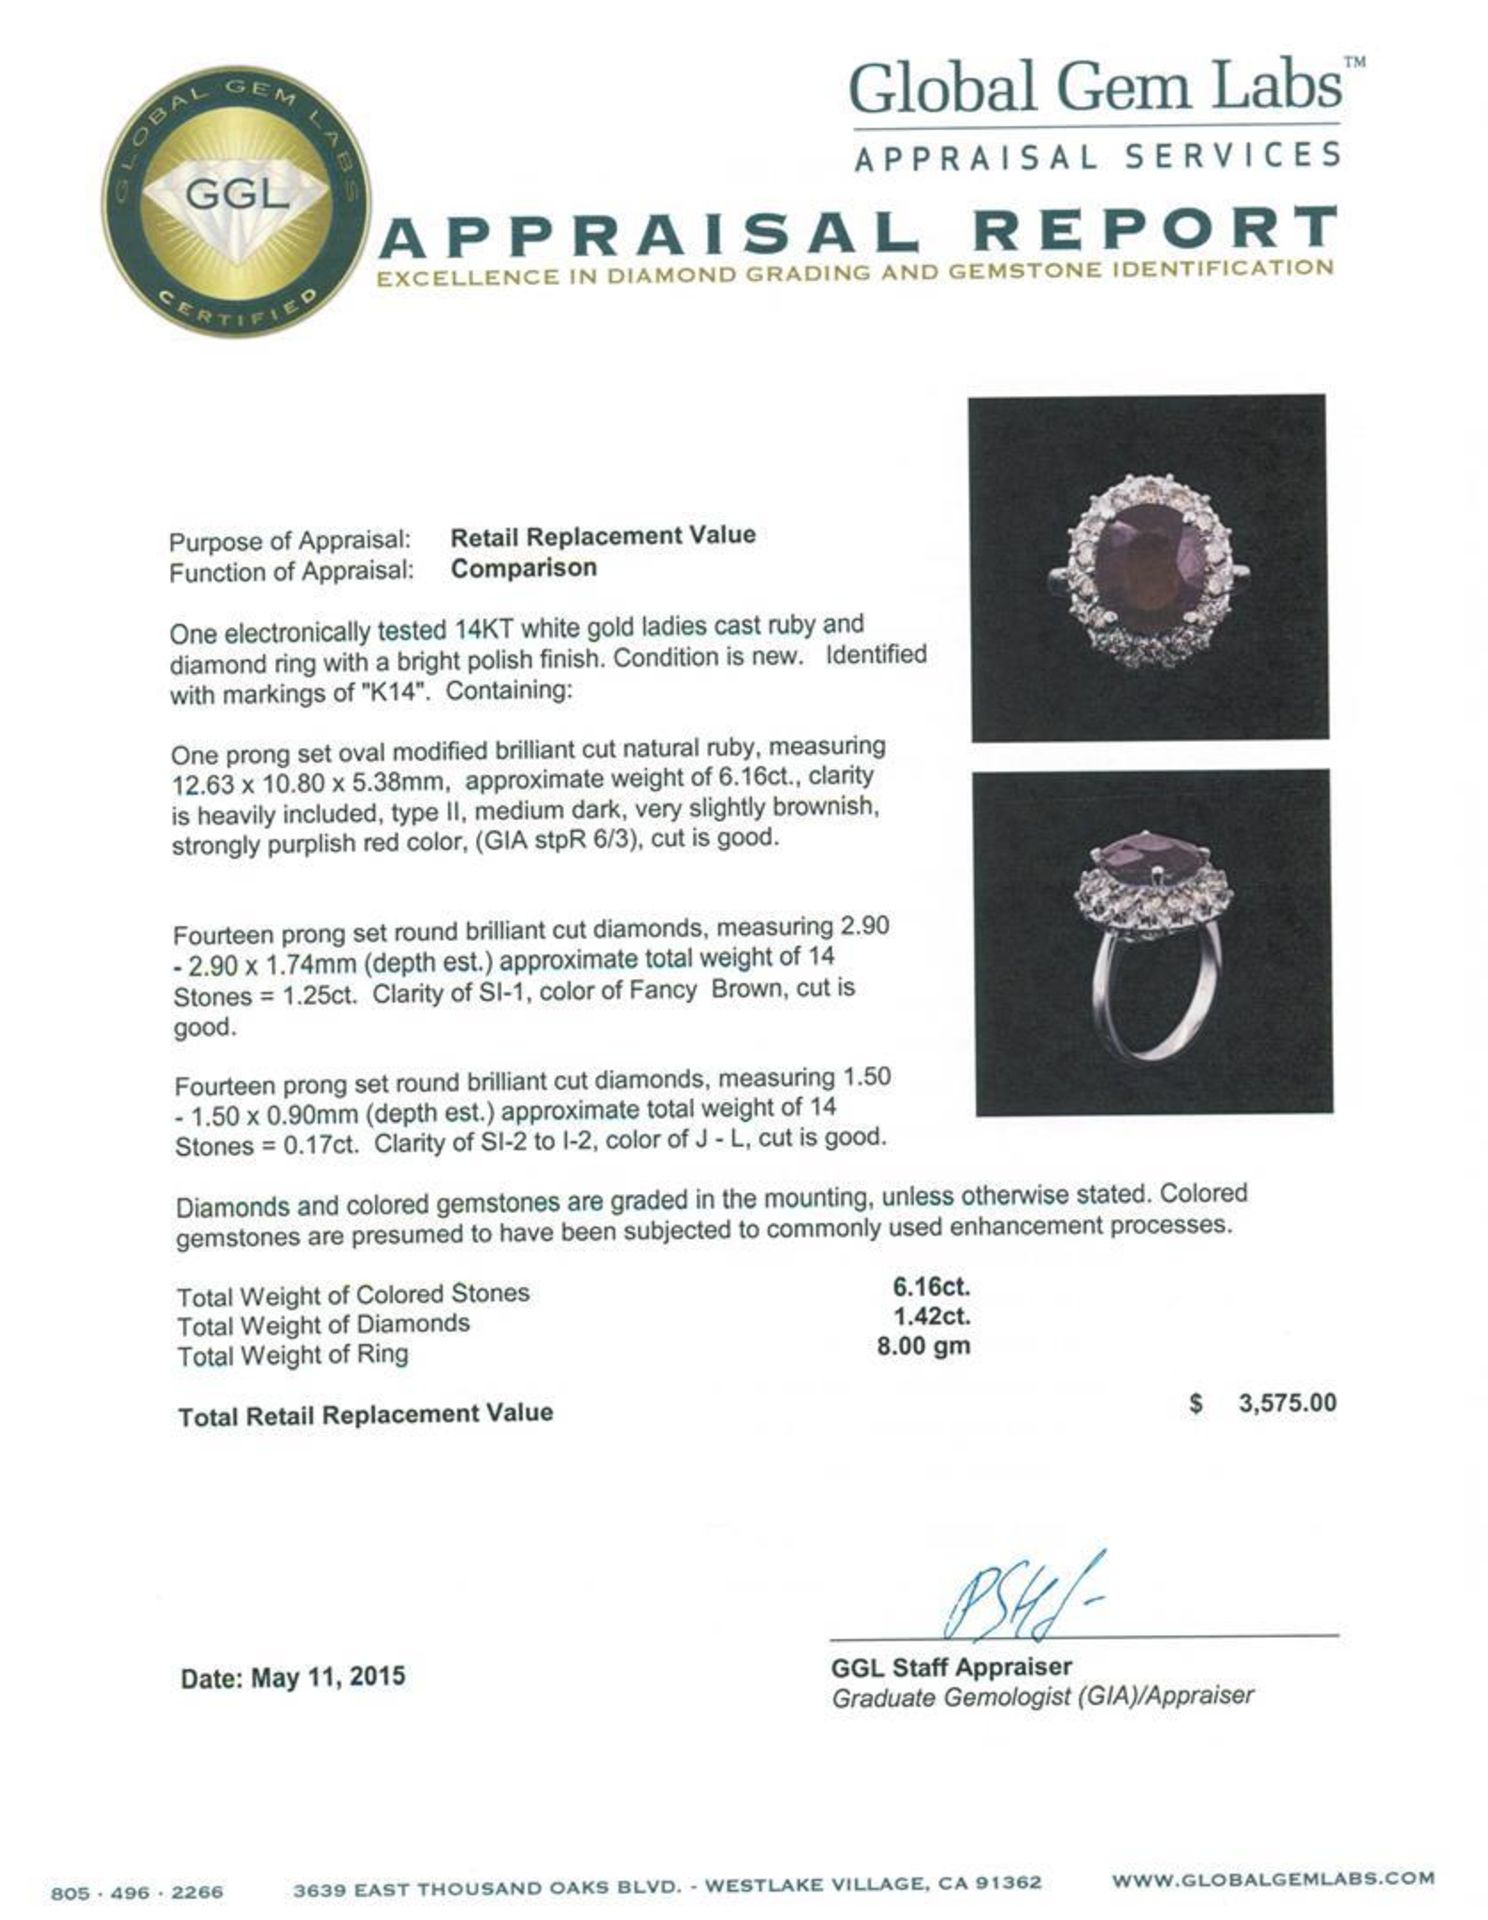 14KT White Gold 6.16 ctw Ruby and Diamond Ring - Image 4 of 4